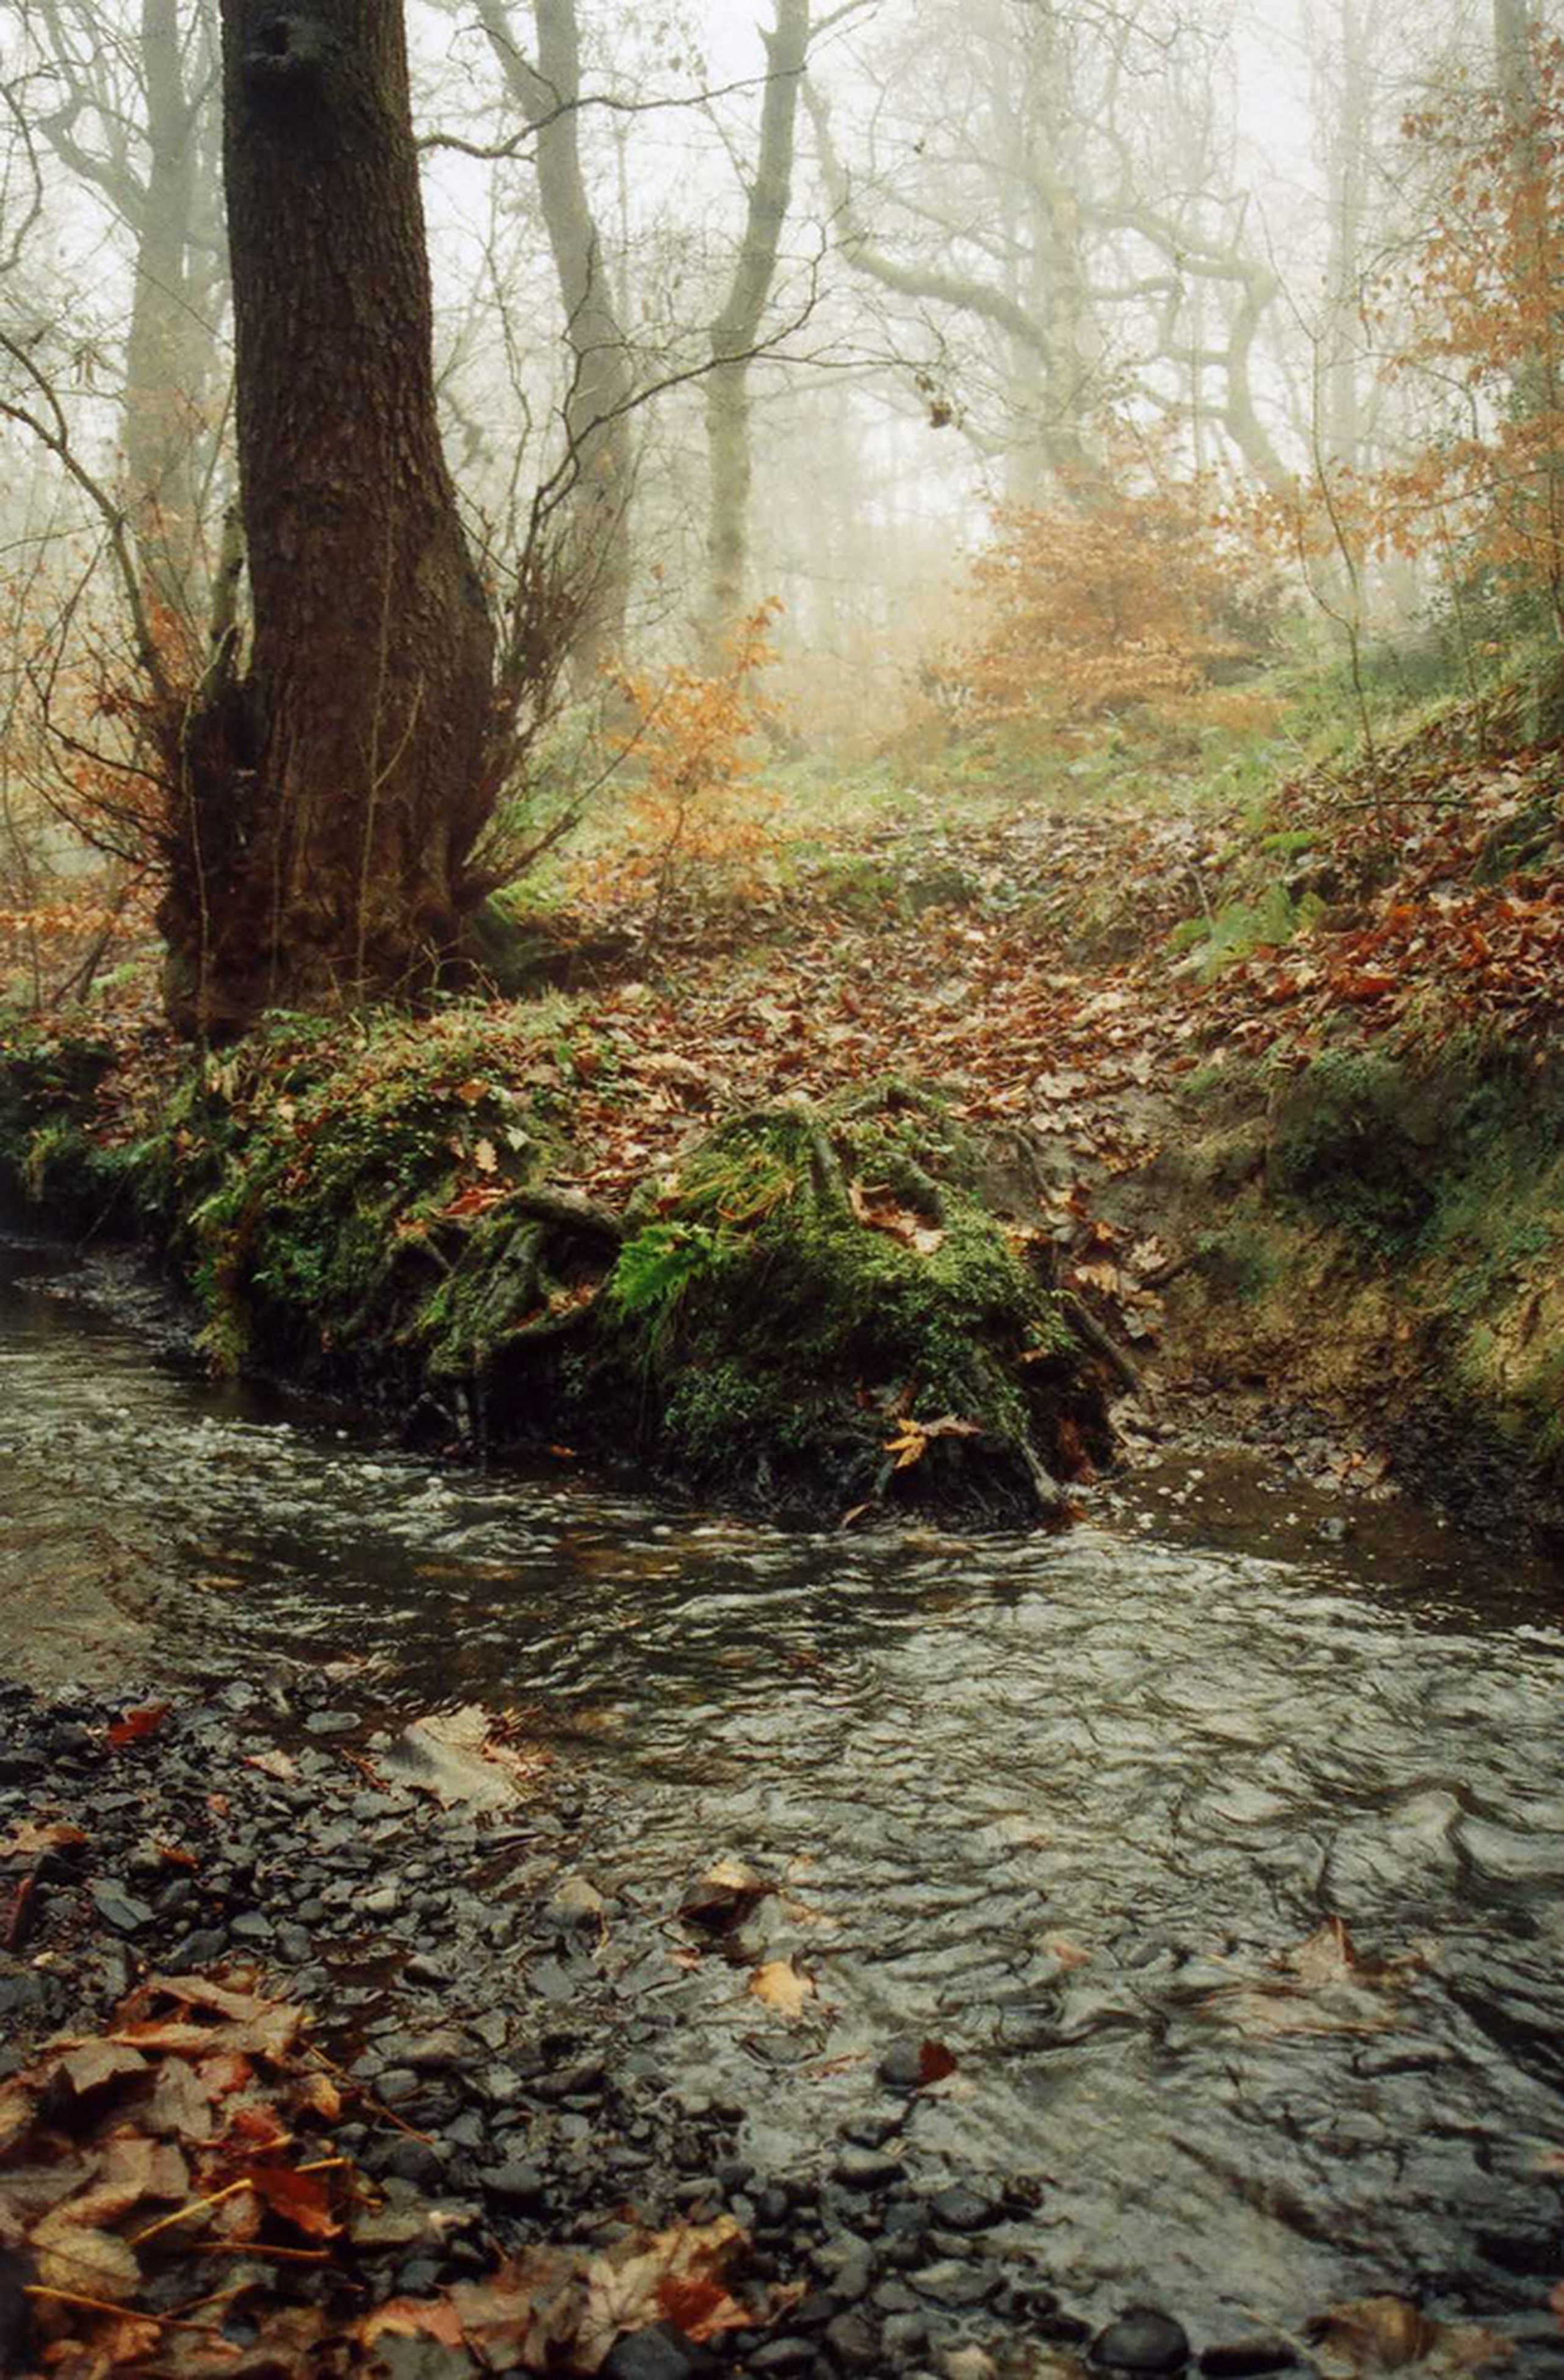 tree, forest, tranquility, water, tranquil scene, autumn, nature, leaf, beauty in nature, scenics, tree trunk, stream, change, fallen, rock - object, growth, day, non-urban scene, season, surface level